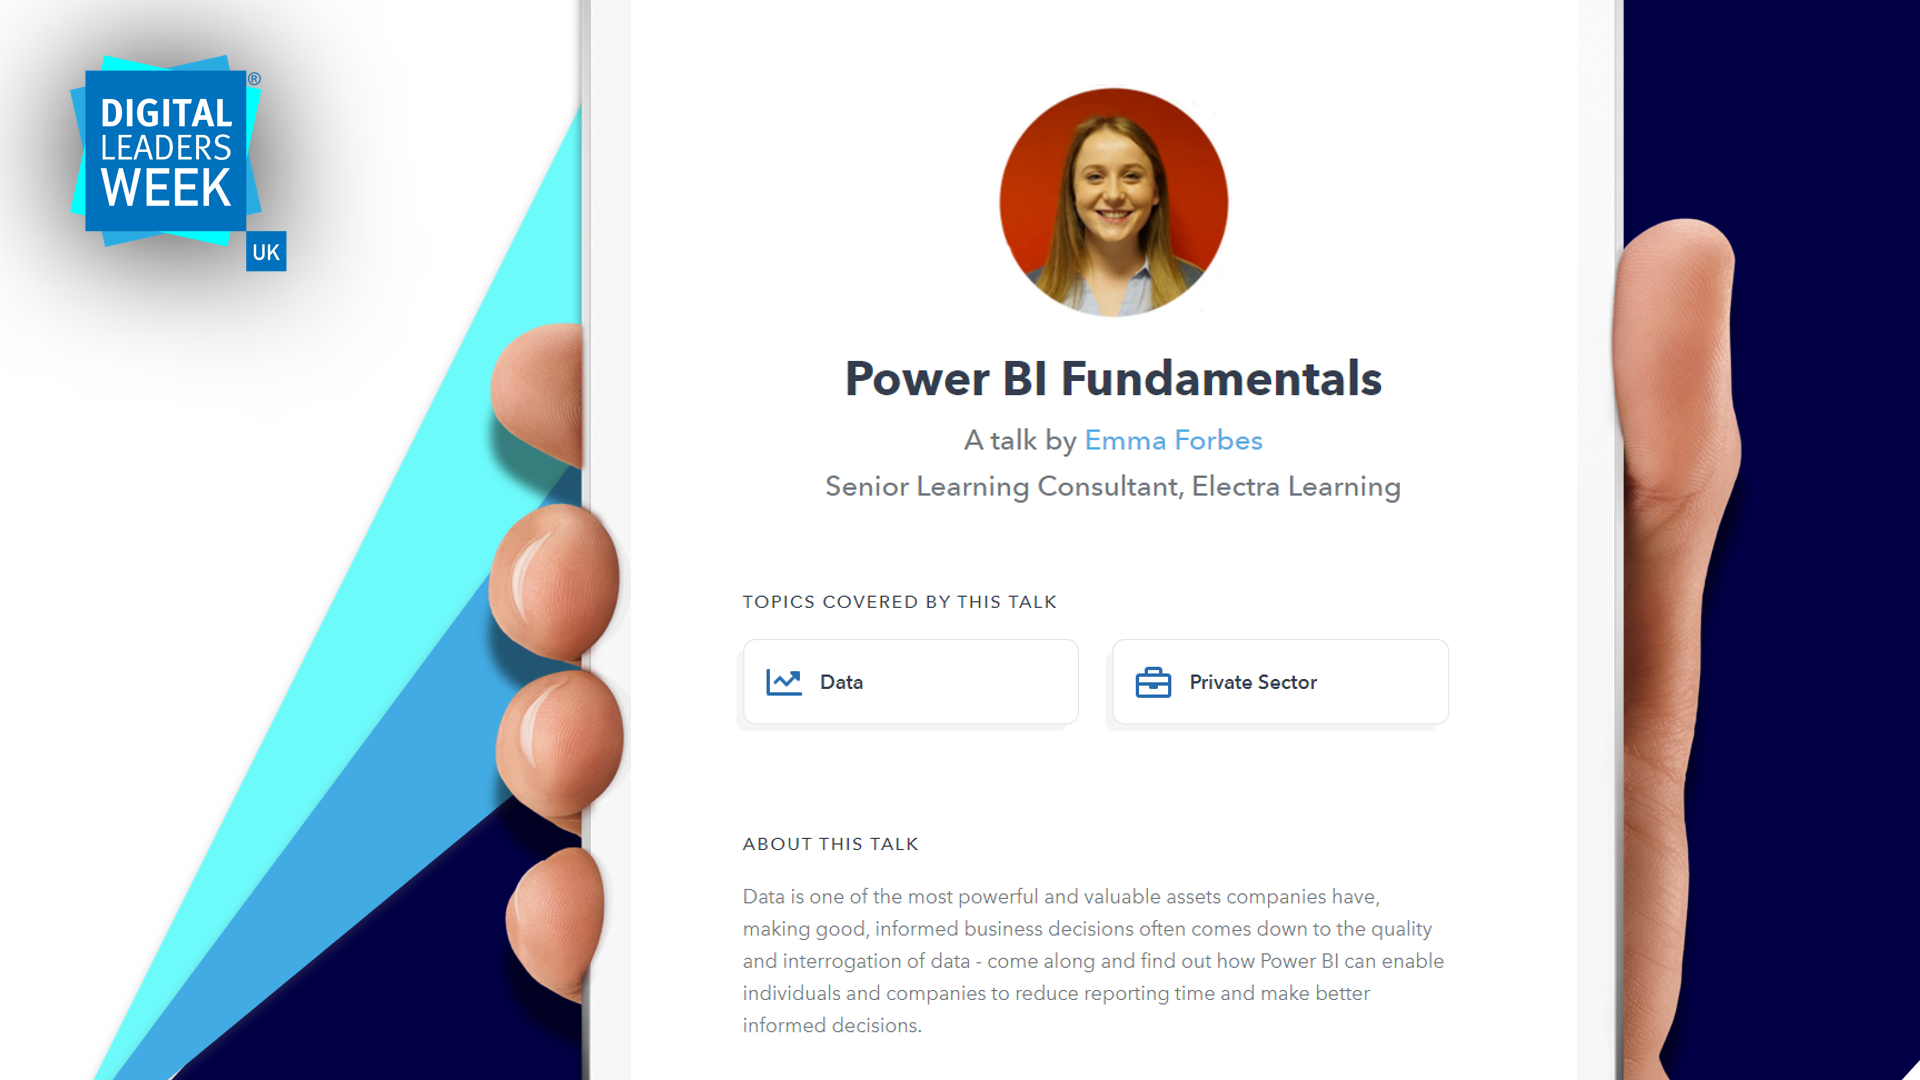 Power BI Fundamentals